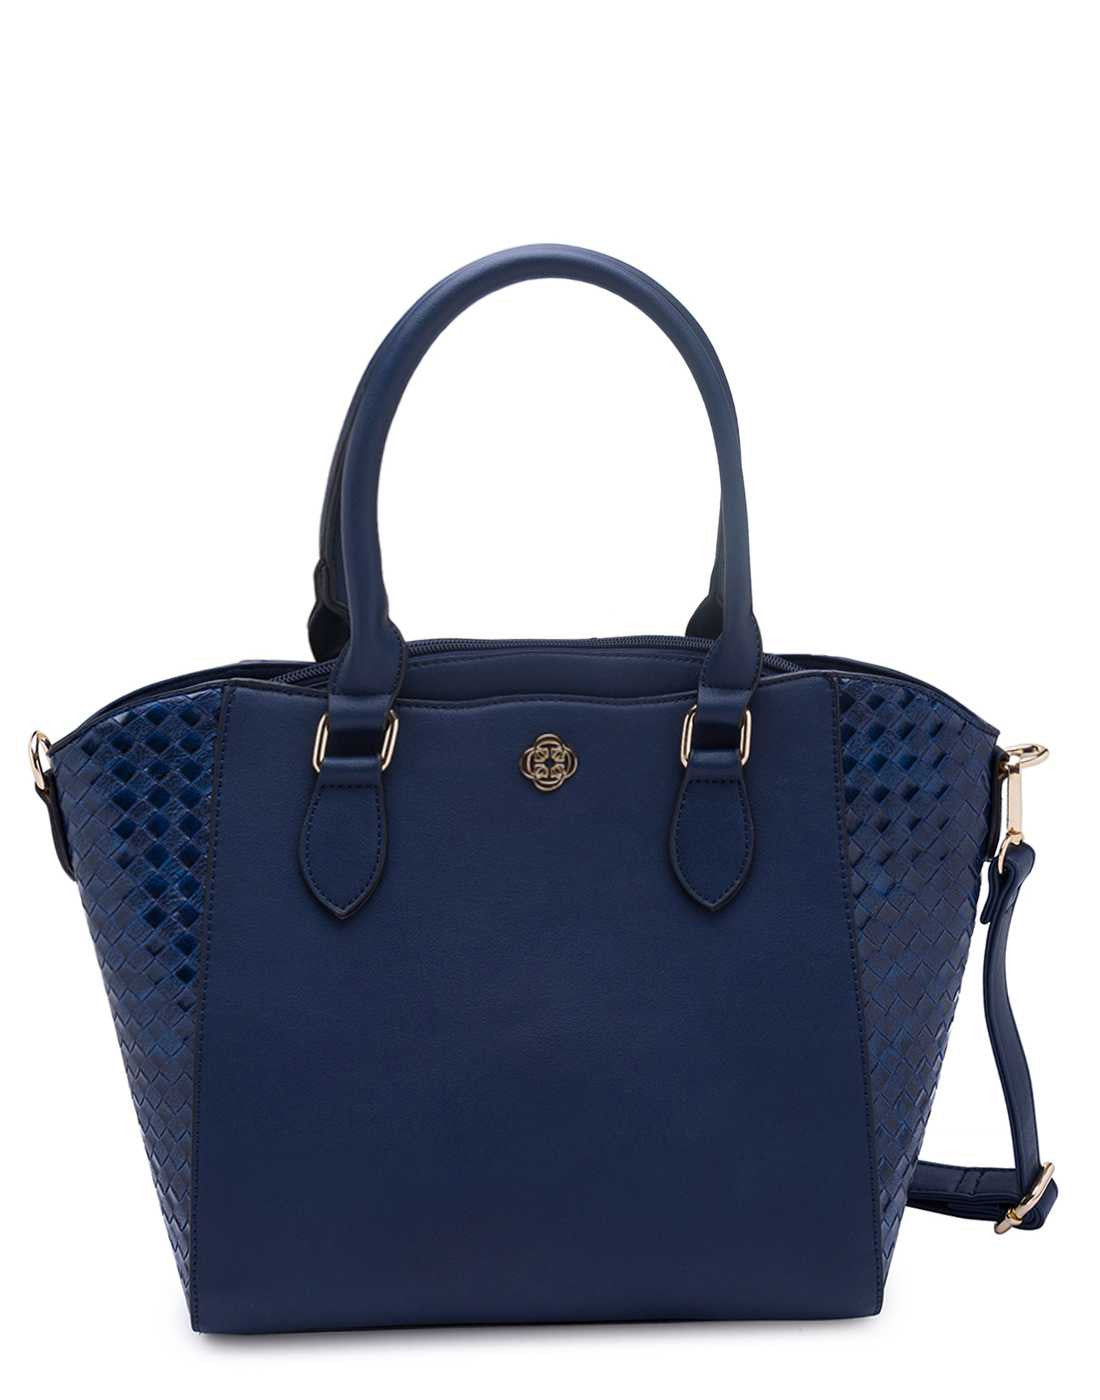 Structured Navy Blue Handbag with panelling